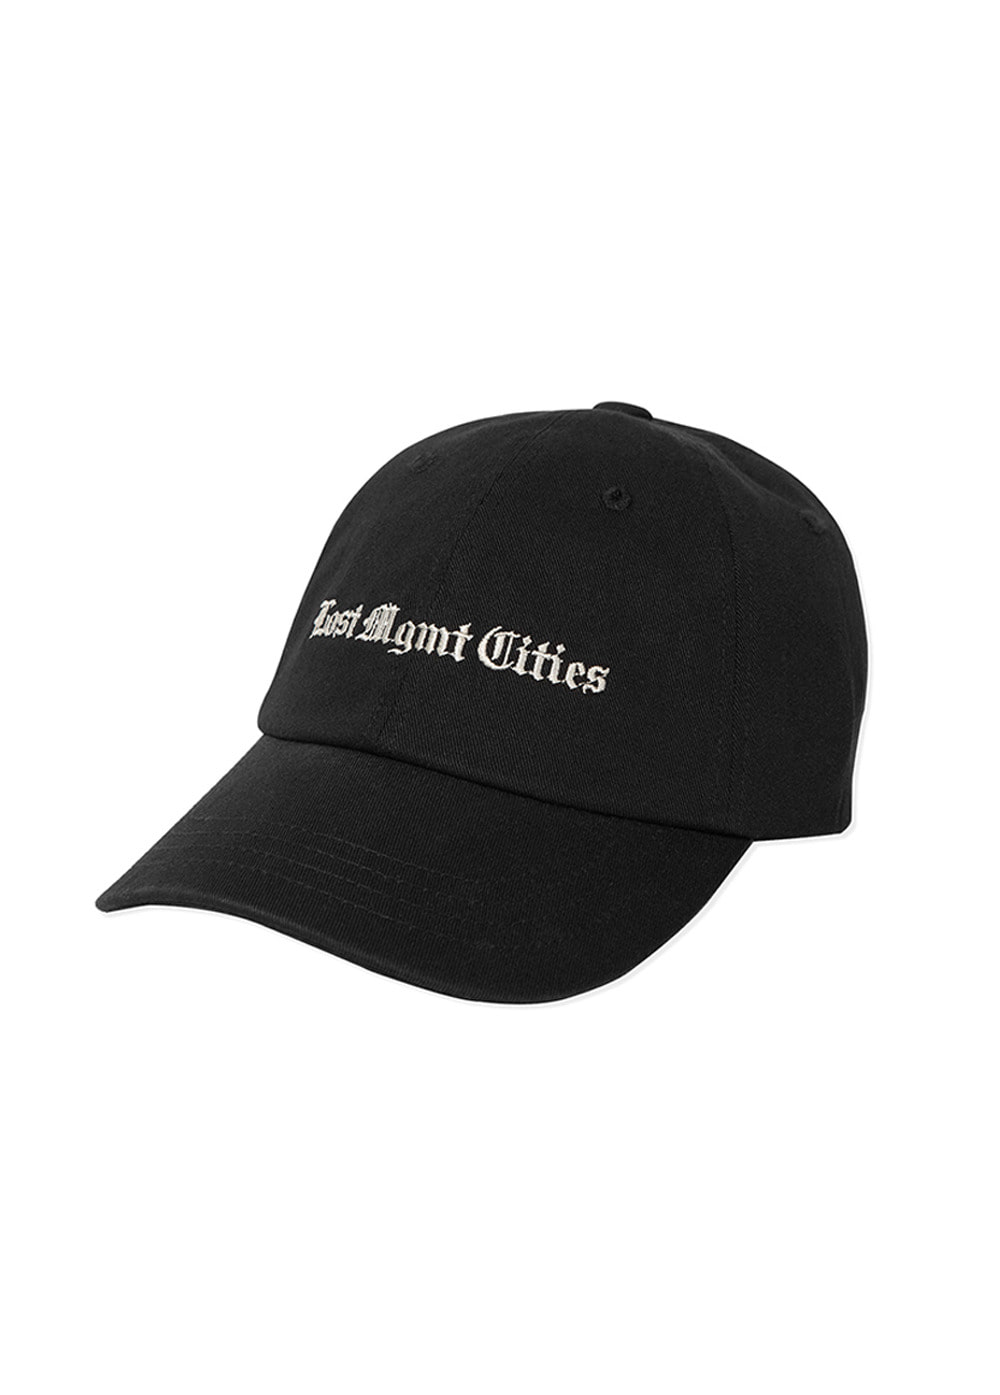 LMC TIMES WASHED 6 PANEL CAP black